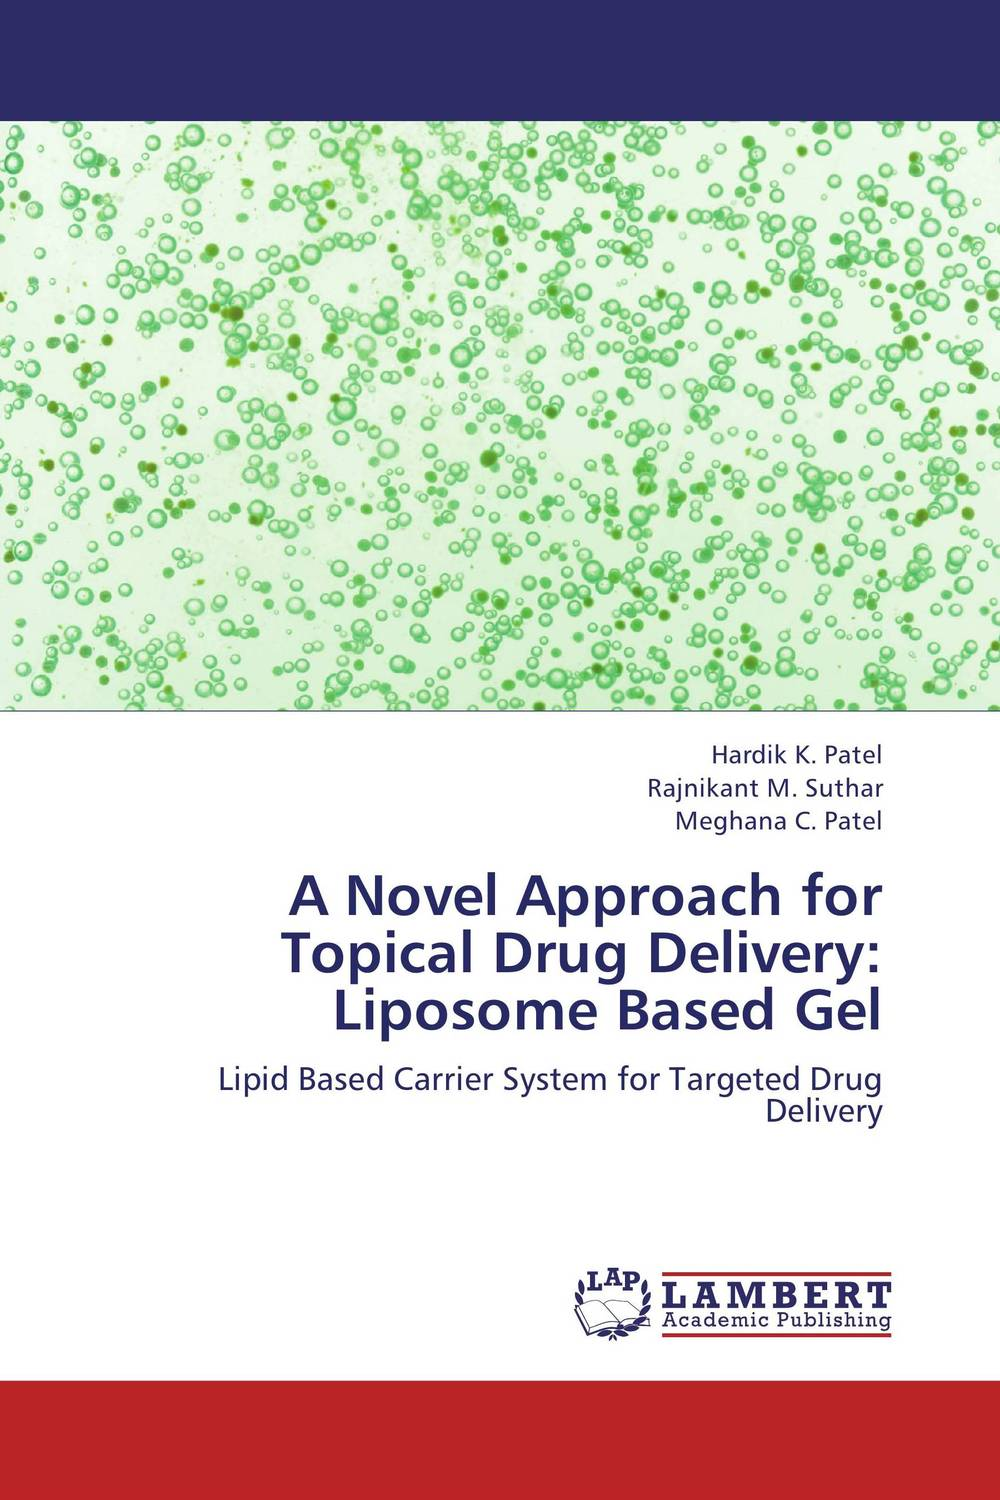 A Novel Approach for Topical Drug Delivery: Liposome Based Gel shubhini saraf a k srivastava and gyanendra singh niosome based delivery of an antitubercular drug